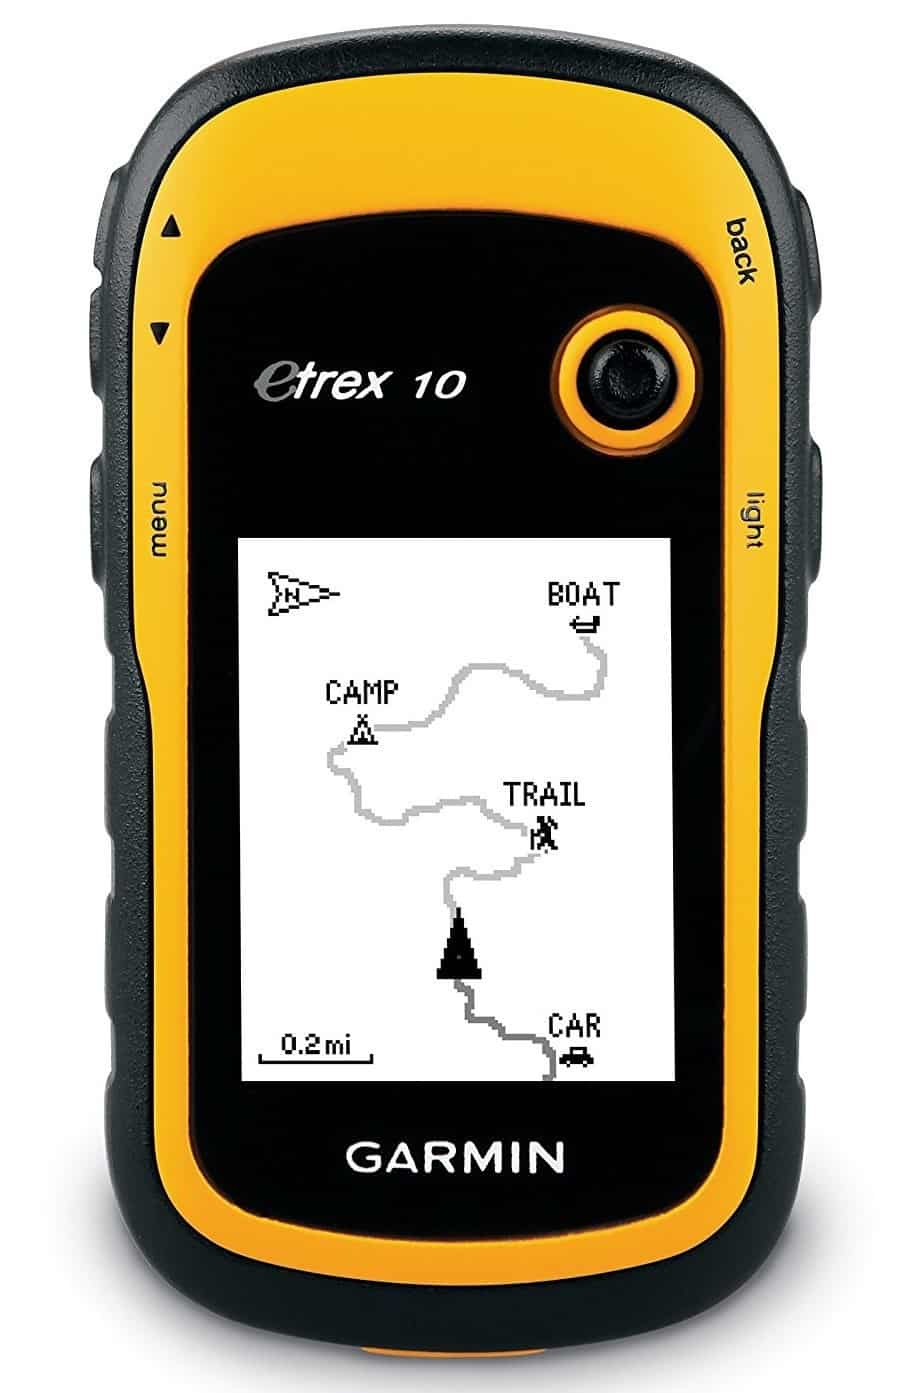 Garmin eTrex 10 Outdoor Handheld GPS